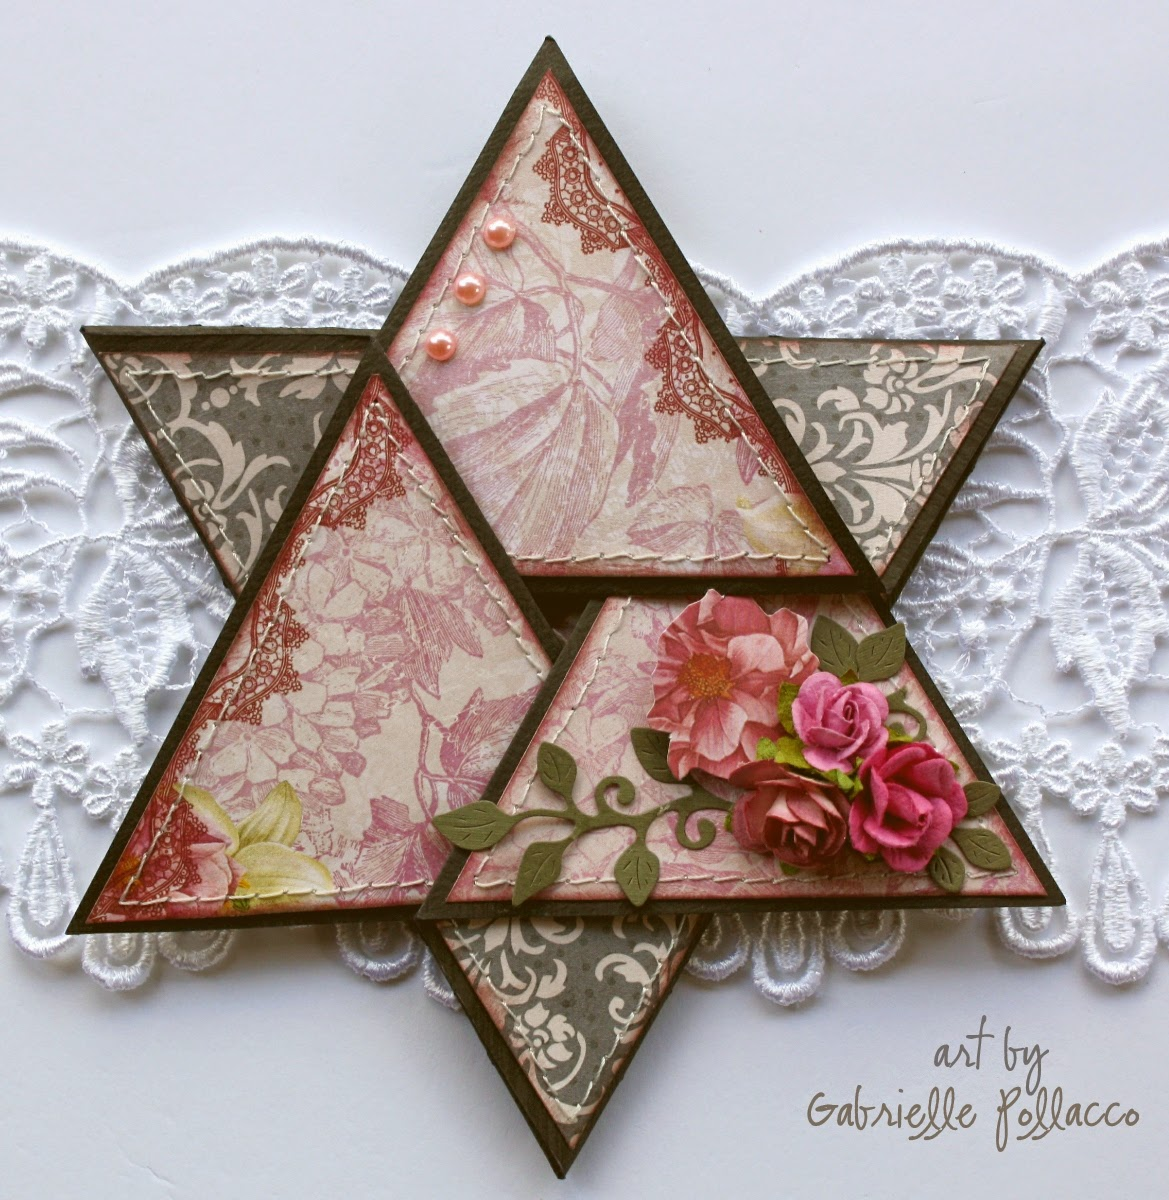 Star Fold card by Gabrielle Pollacco using Bo Bunny Madeleine paper collection.